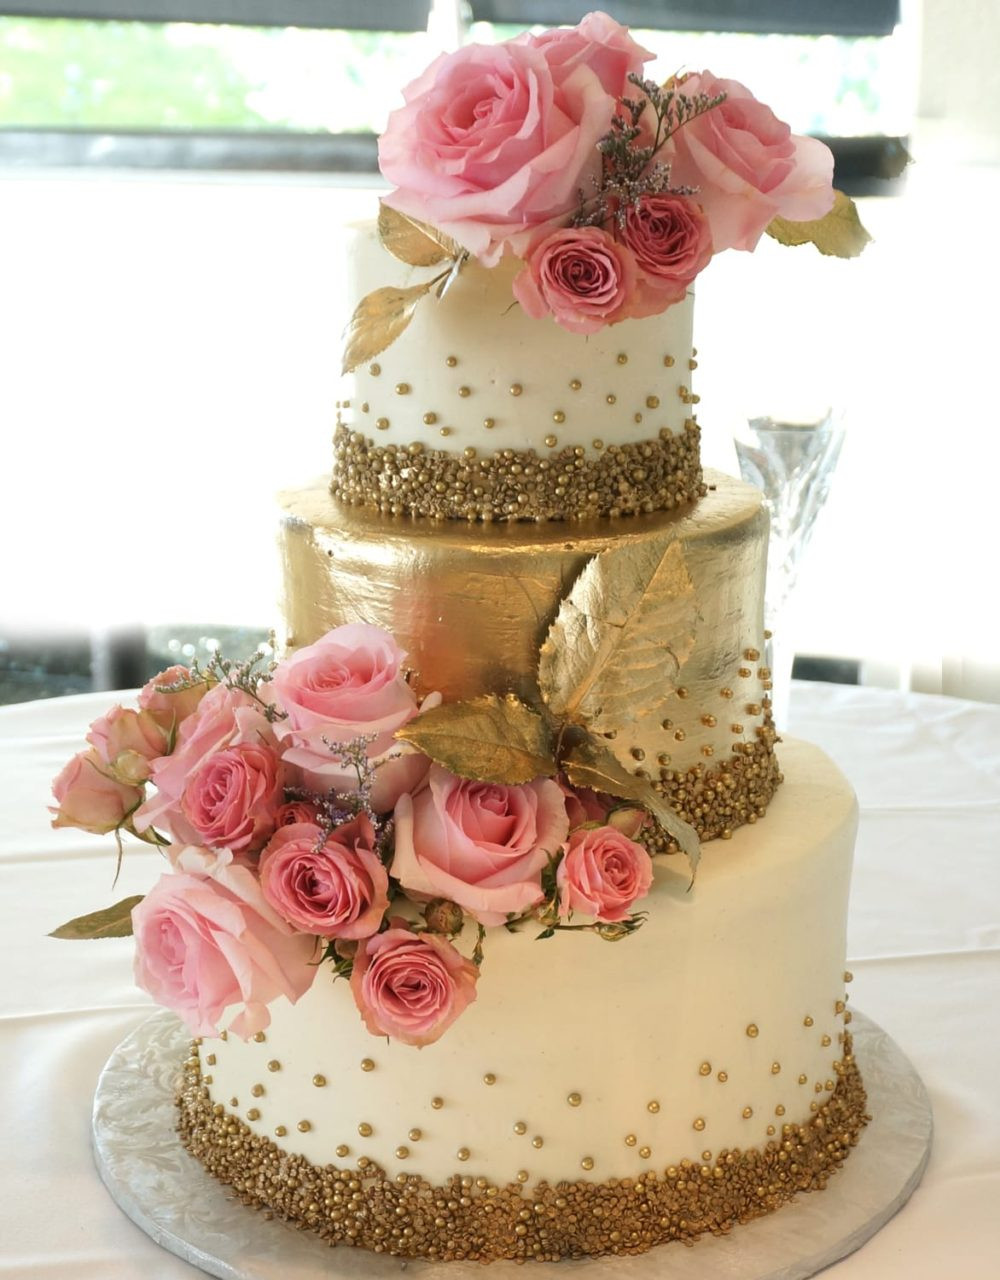 Wedding Cakes Picture Gallery  Wedding Cakes Gallery – Dreamcakes Bakery